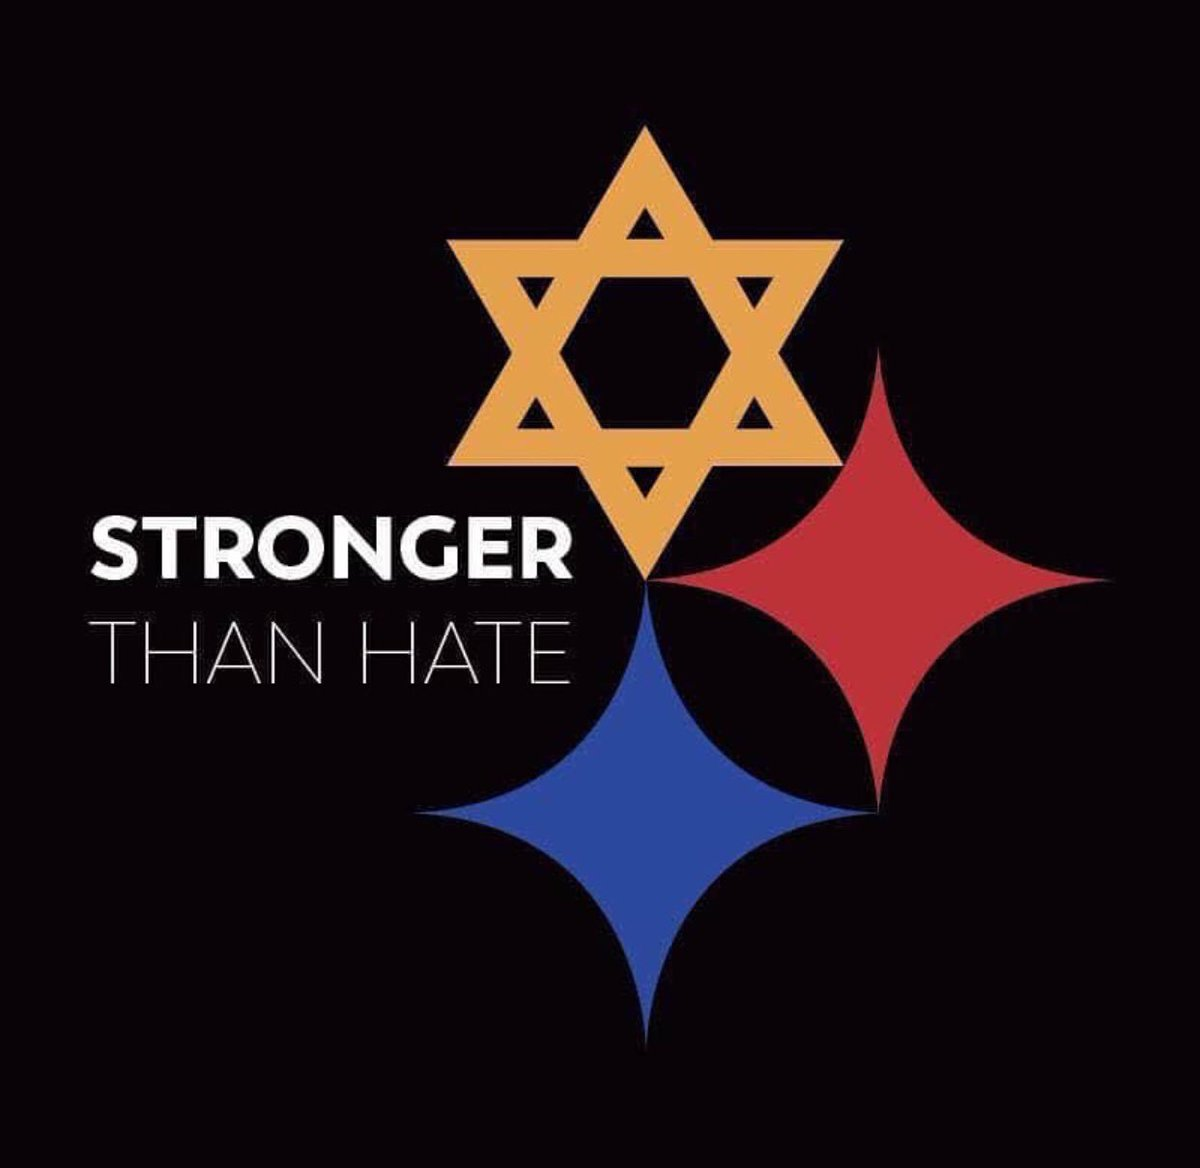 RT @JoeManganiello: #PittsburghStrong https://t.co/1nPiwbn8UQ